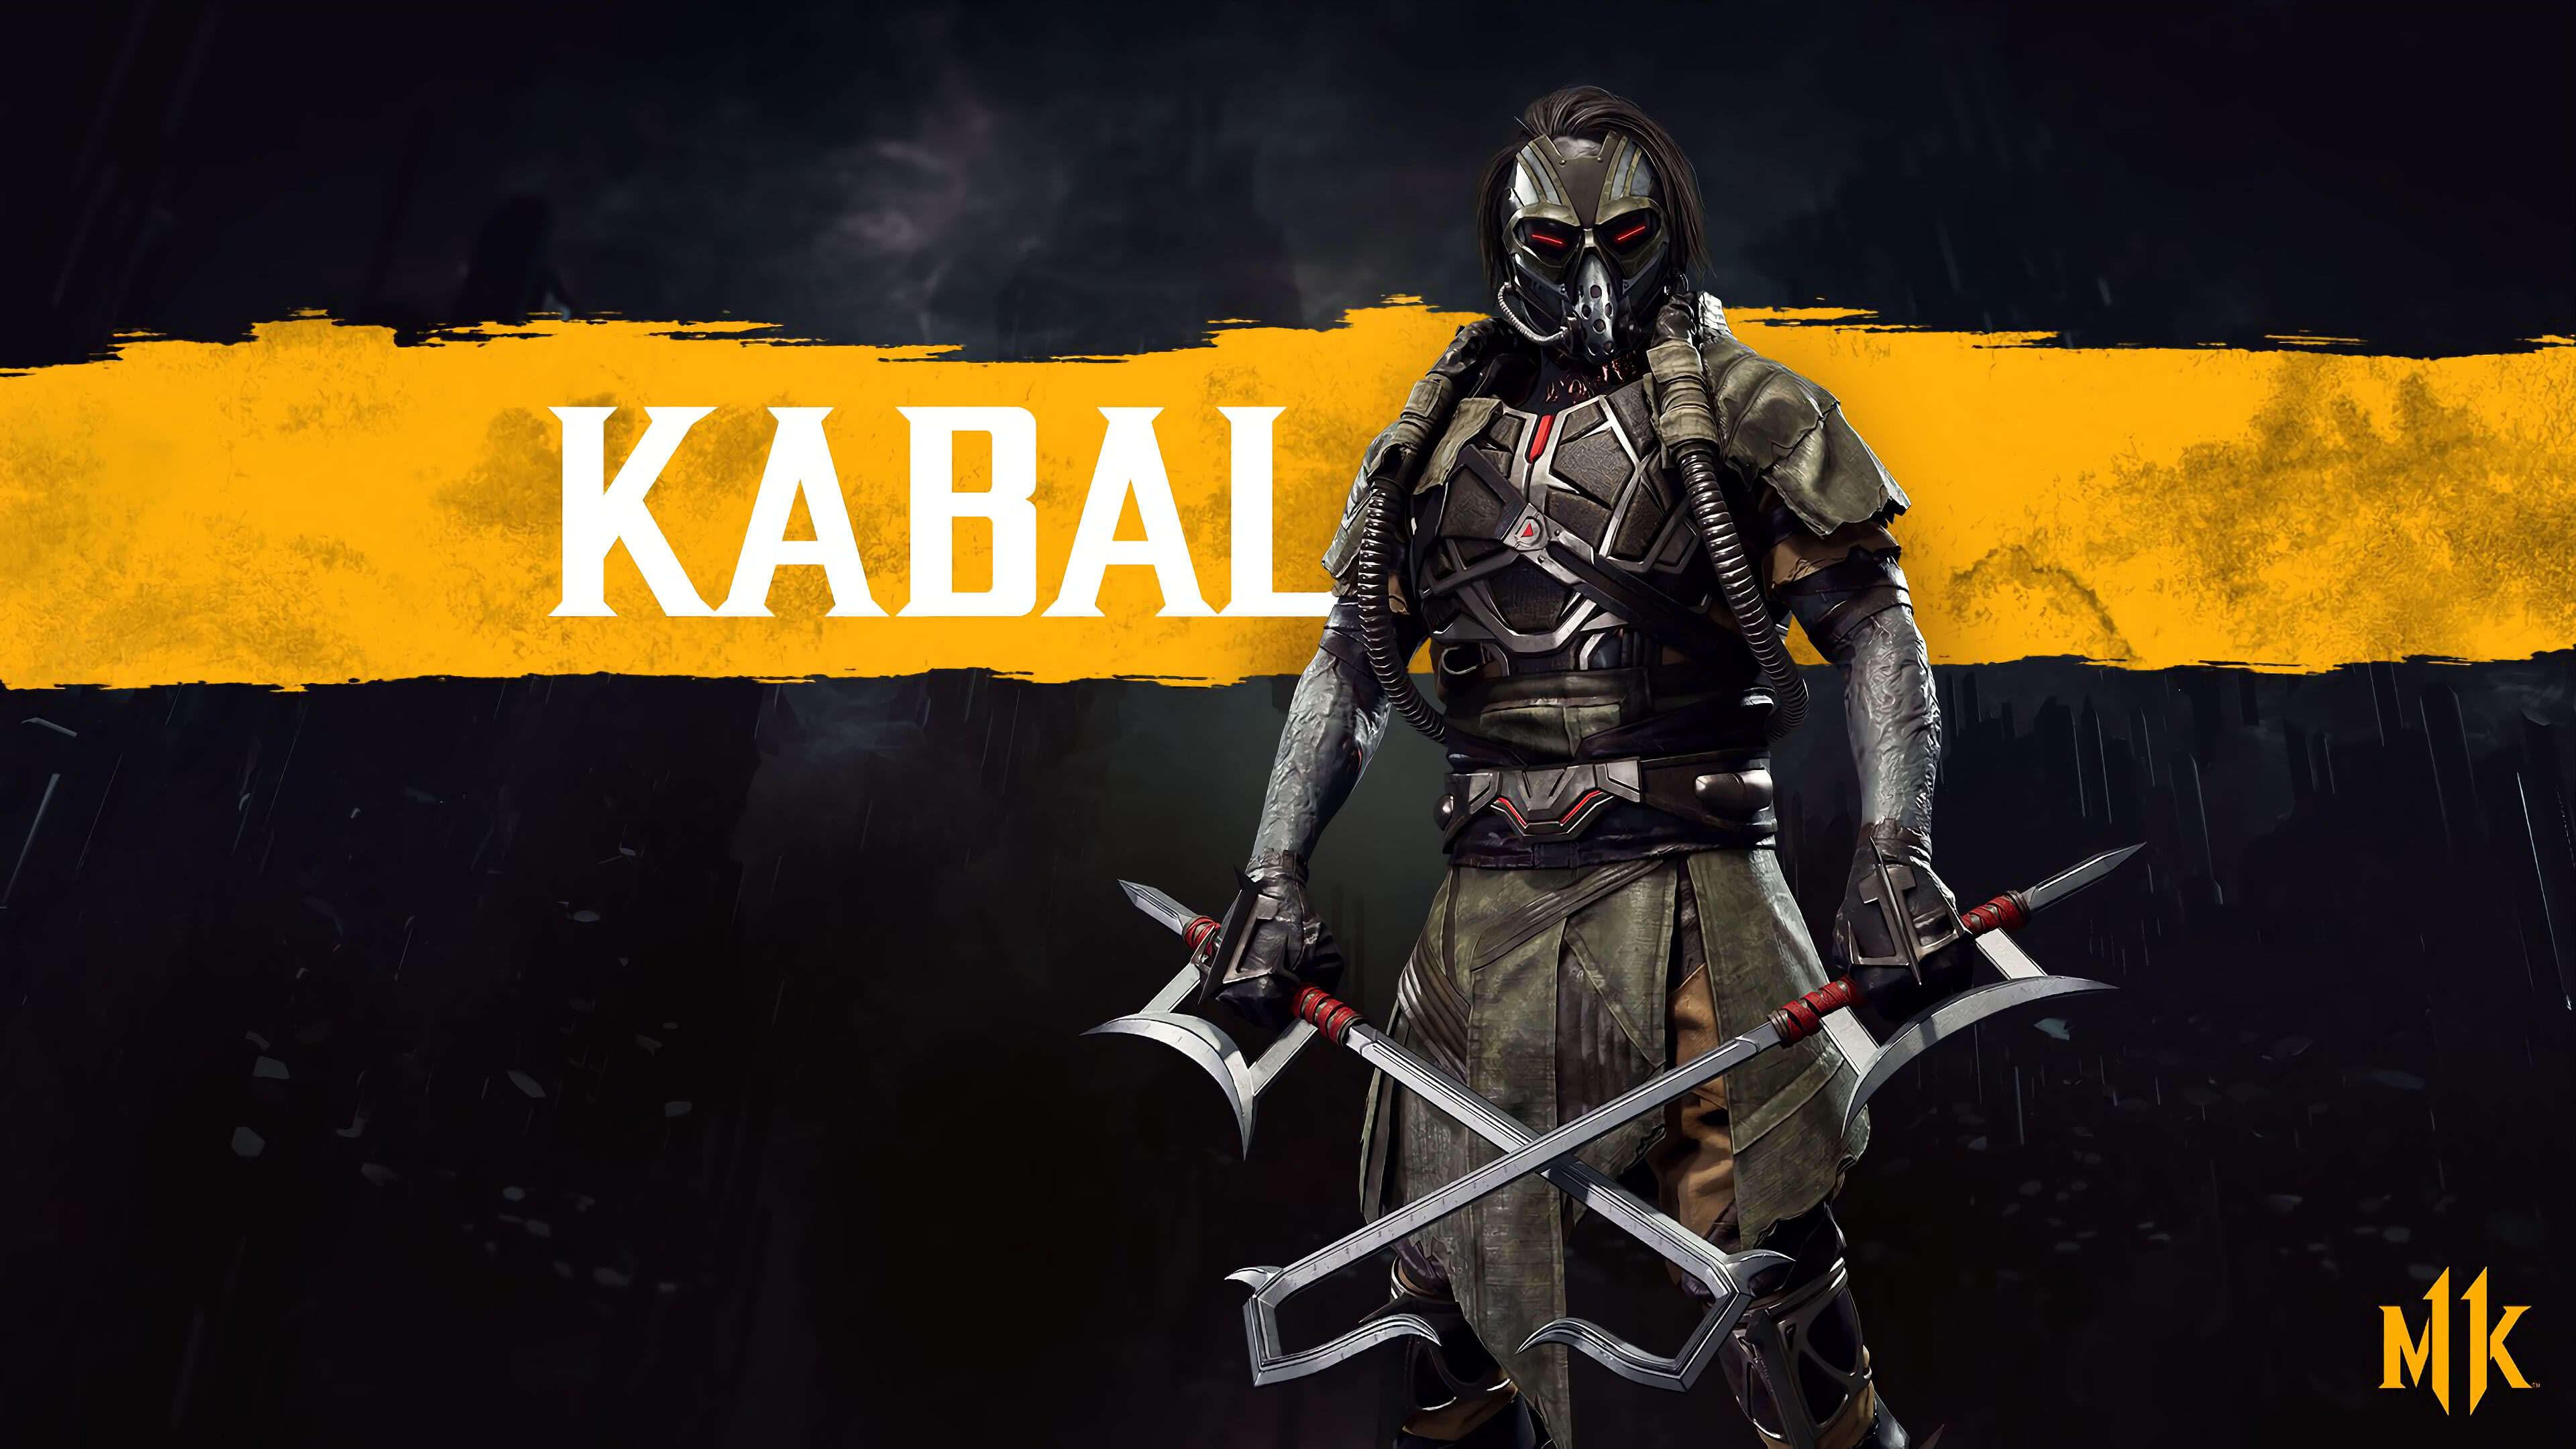 mortal kombat 11 kabal uhd 4k wallpaper